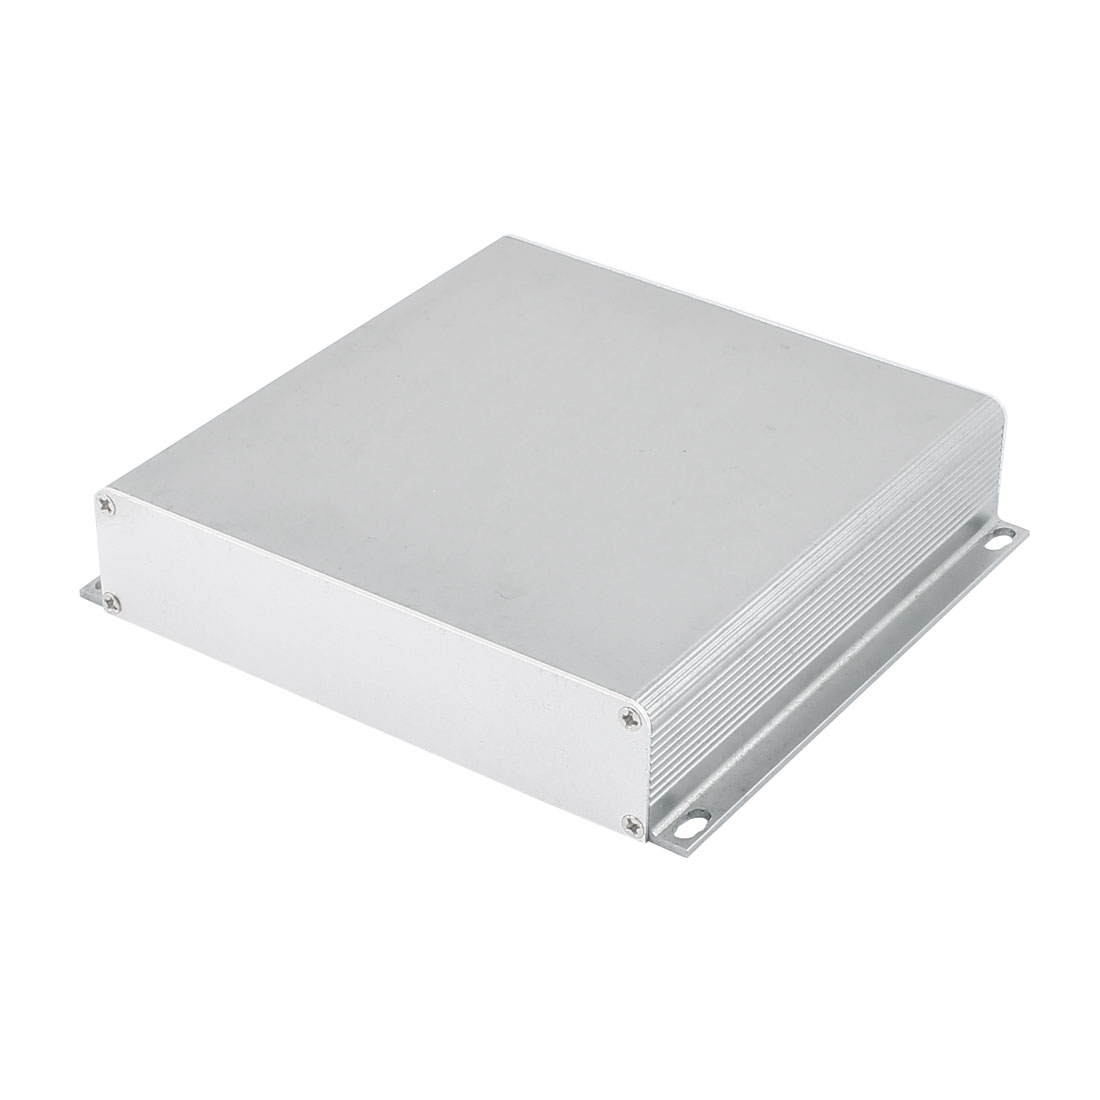 143 x 155 x 32mm Multi-purpose Electronic Extruded Aluminum Enclosure Case Gray